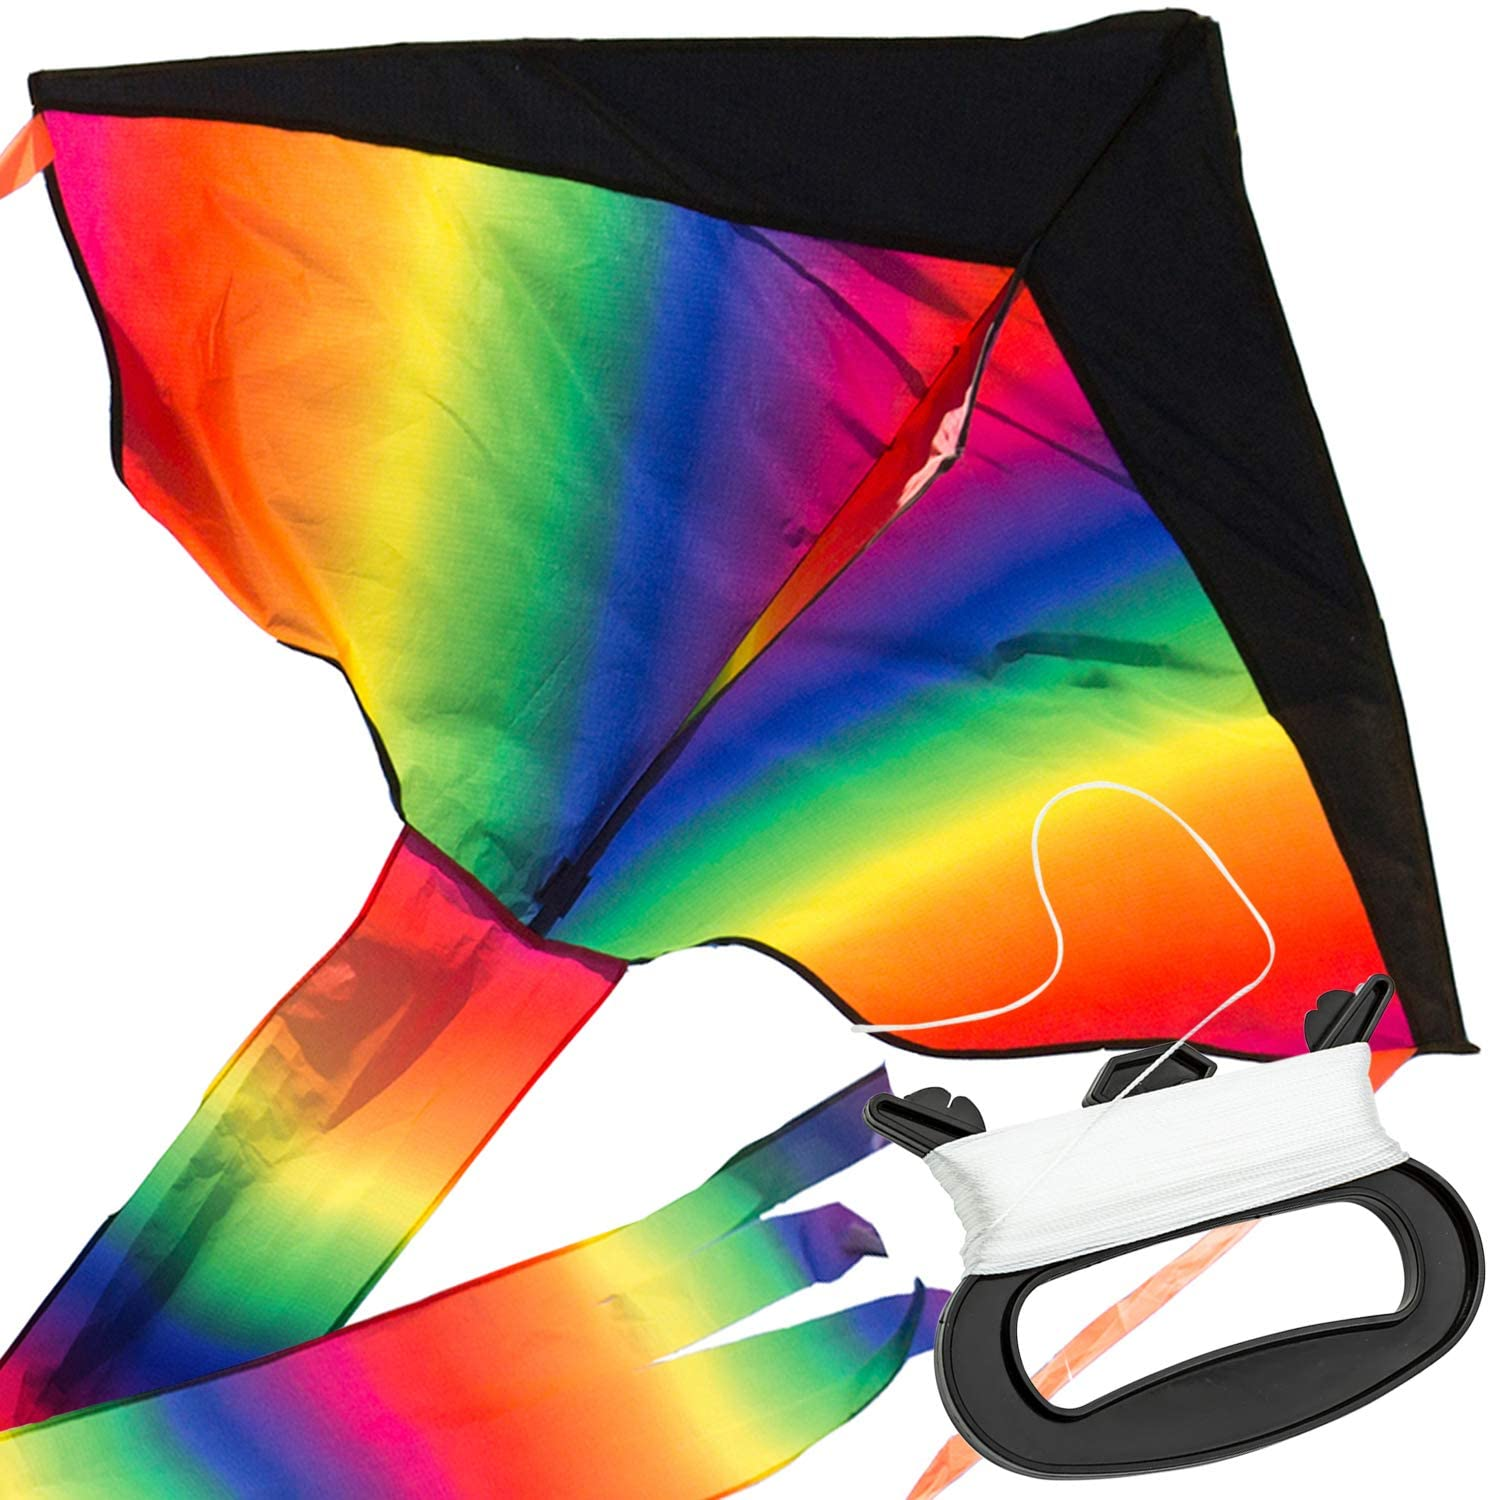 Top 14 Best Kites For Kids (2020 Reviews & Buying Guide) 5